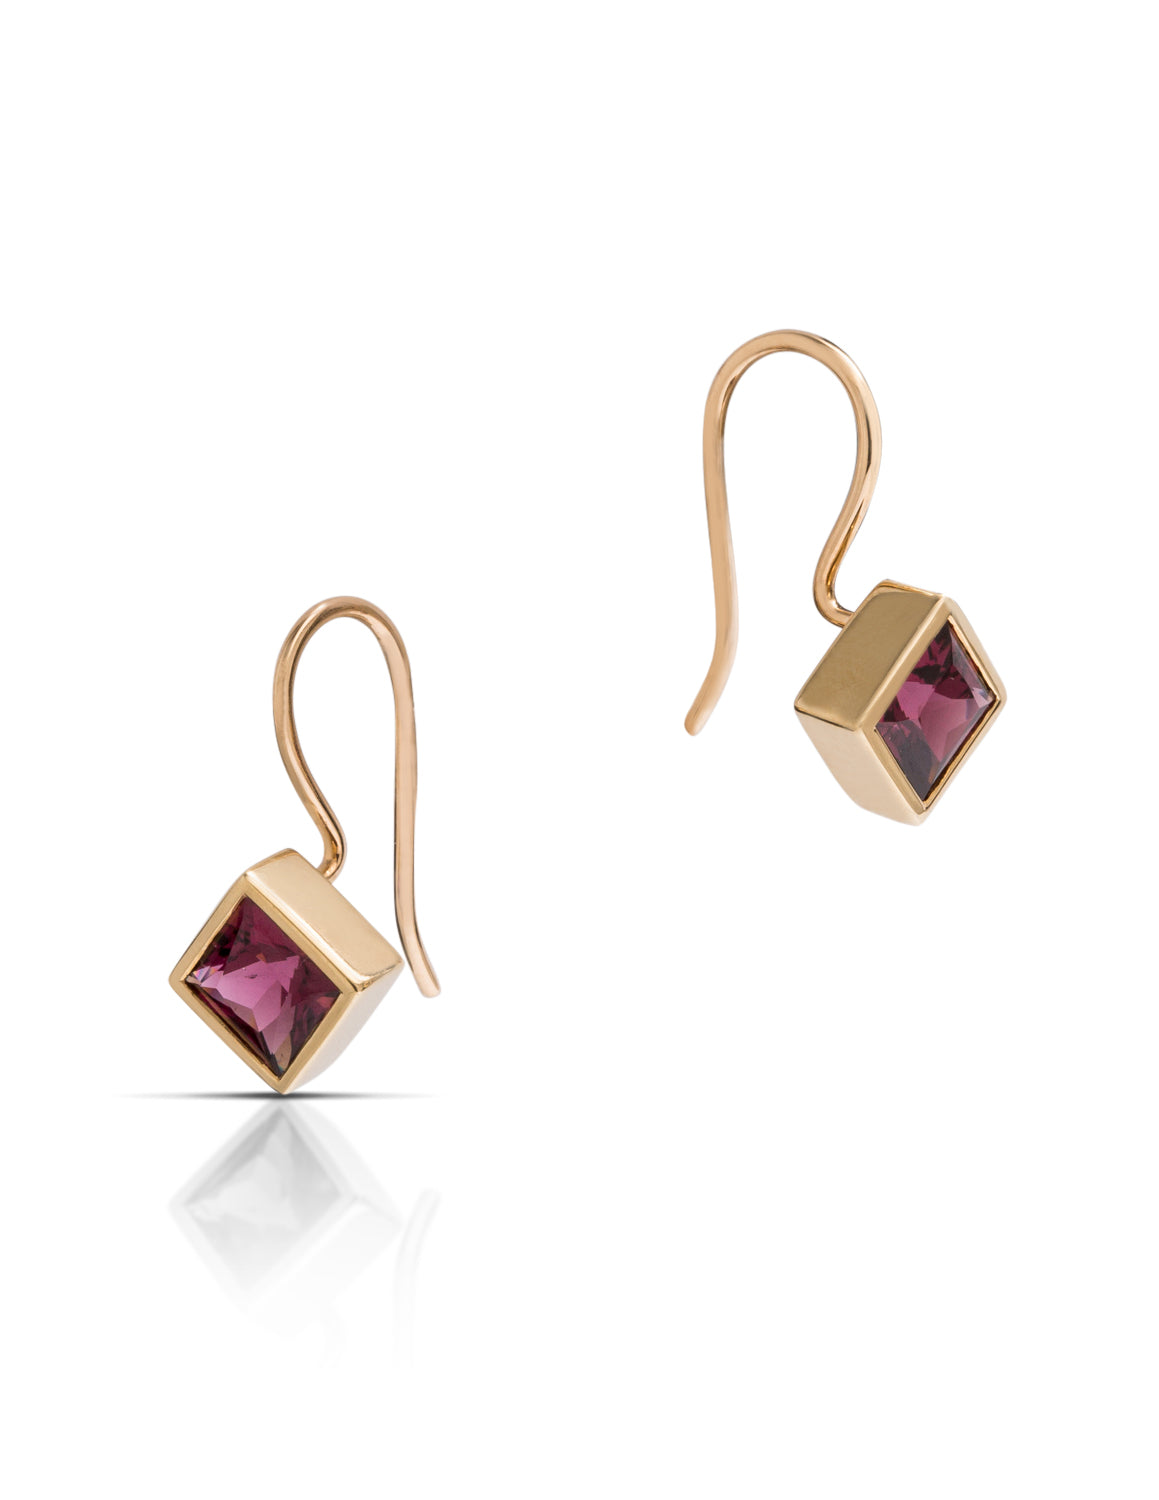 Rhodolite Garnet Earrings - Charles Koll Jewellers